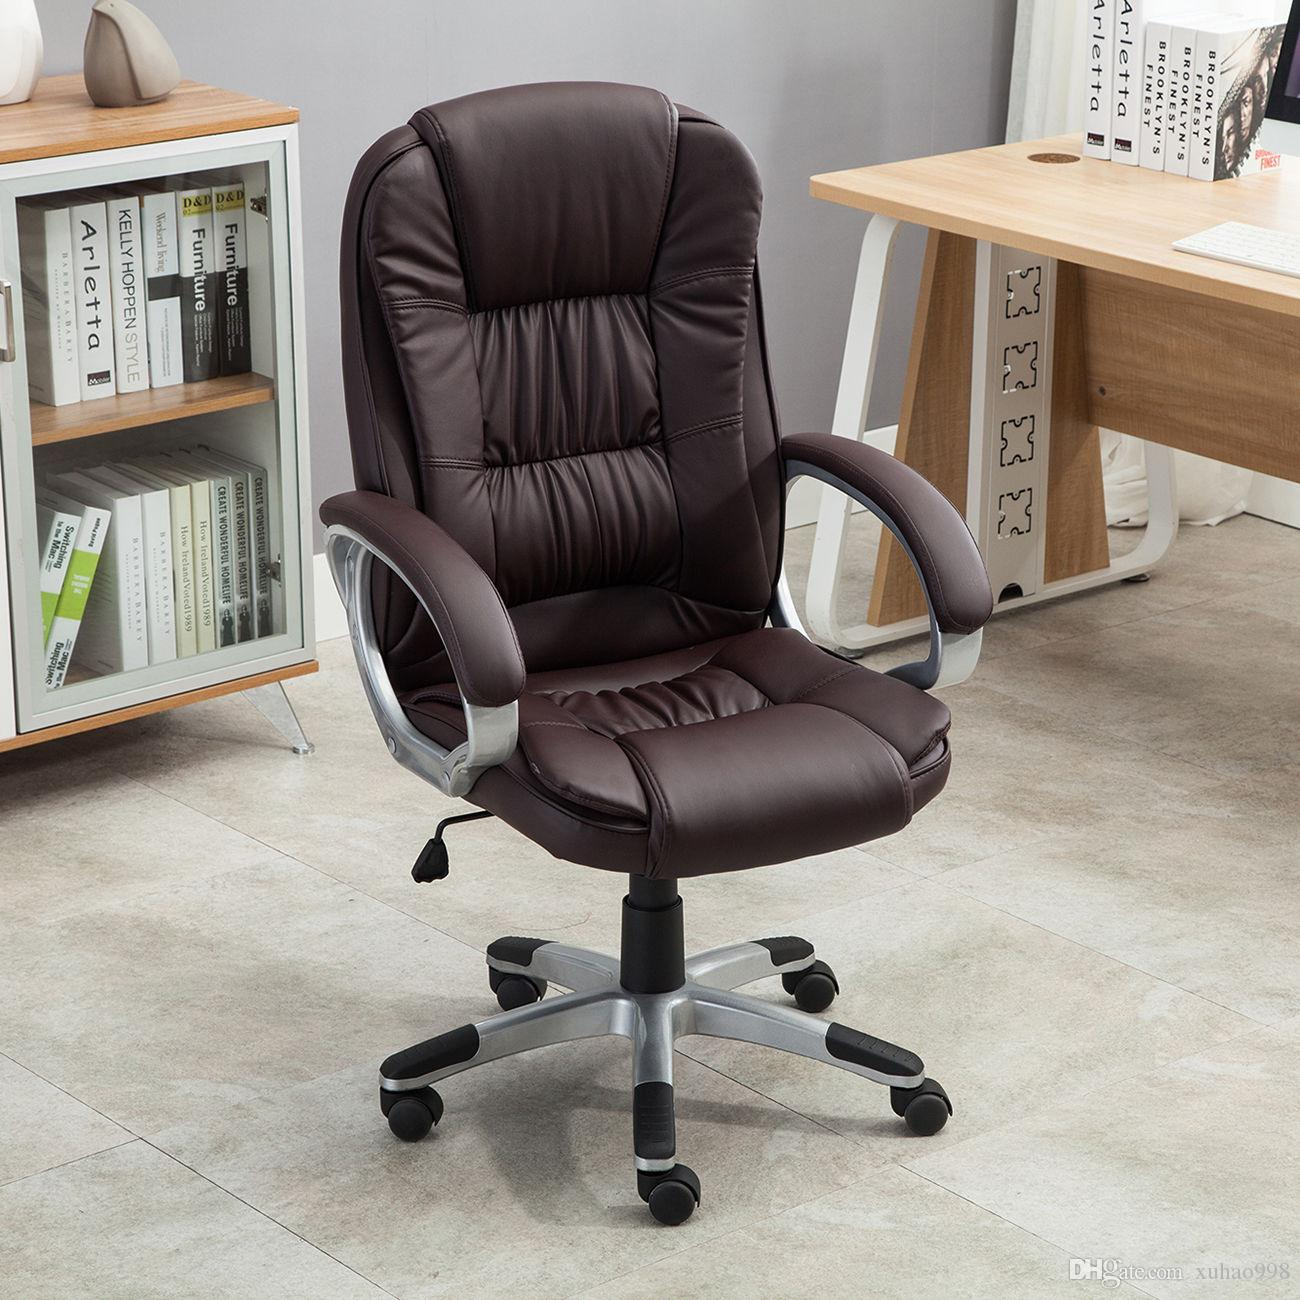 Best Executive High Back Pu Leather Computer Desk Ergonomic Task Office Chair Brown Under 57 29 Dhgate Com